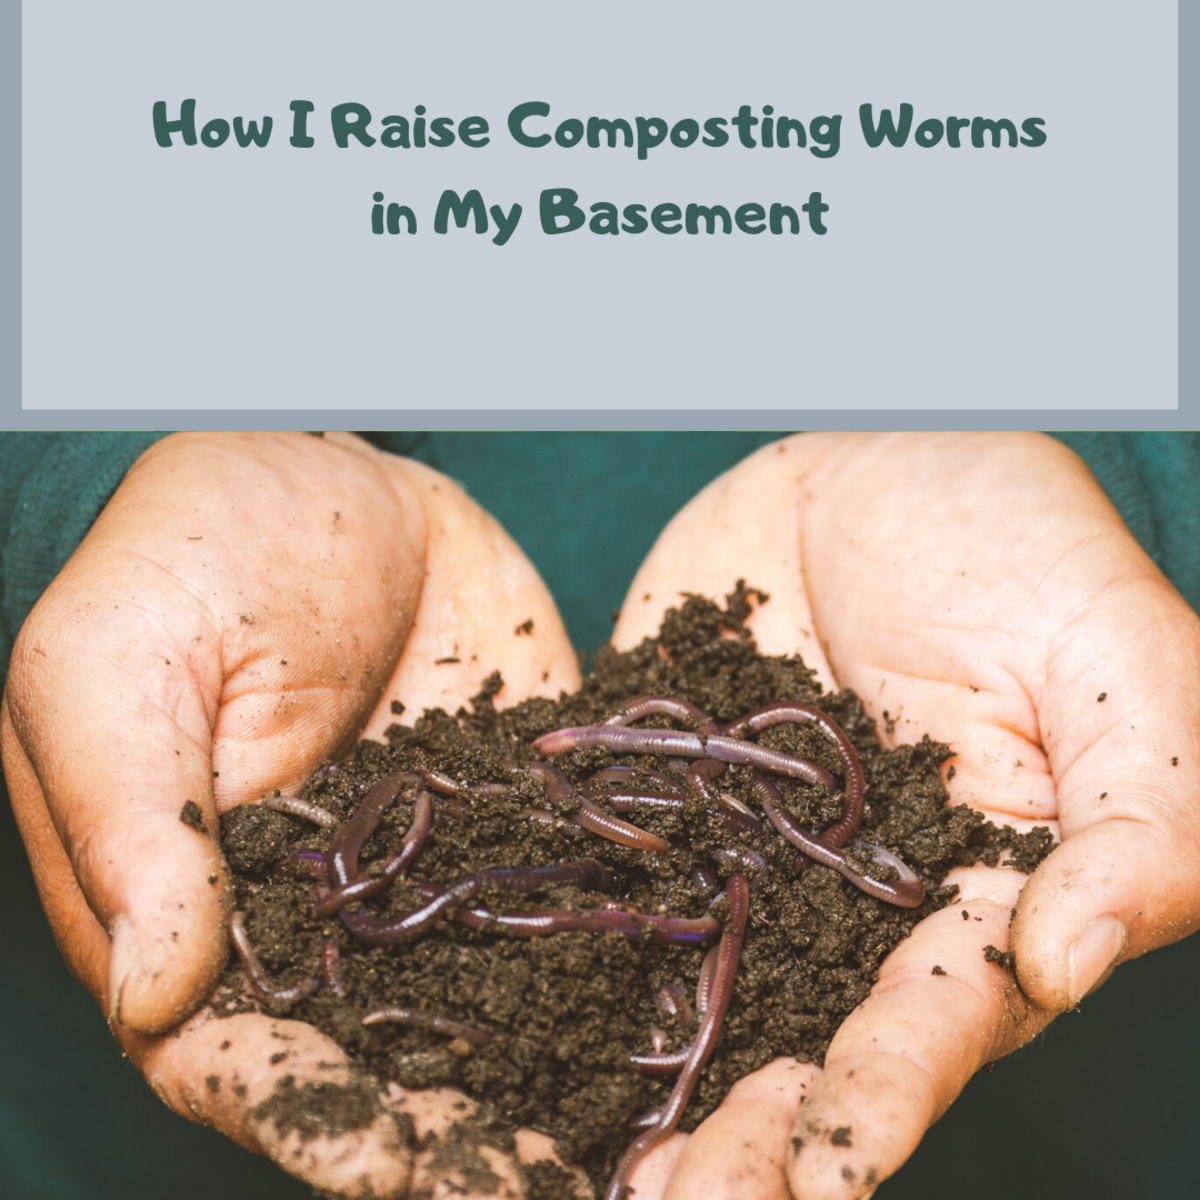 How I Raise Composting Worms in My Basement